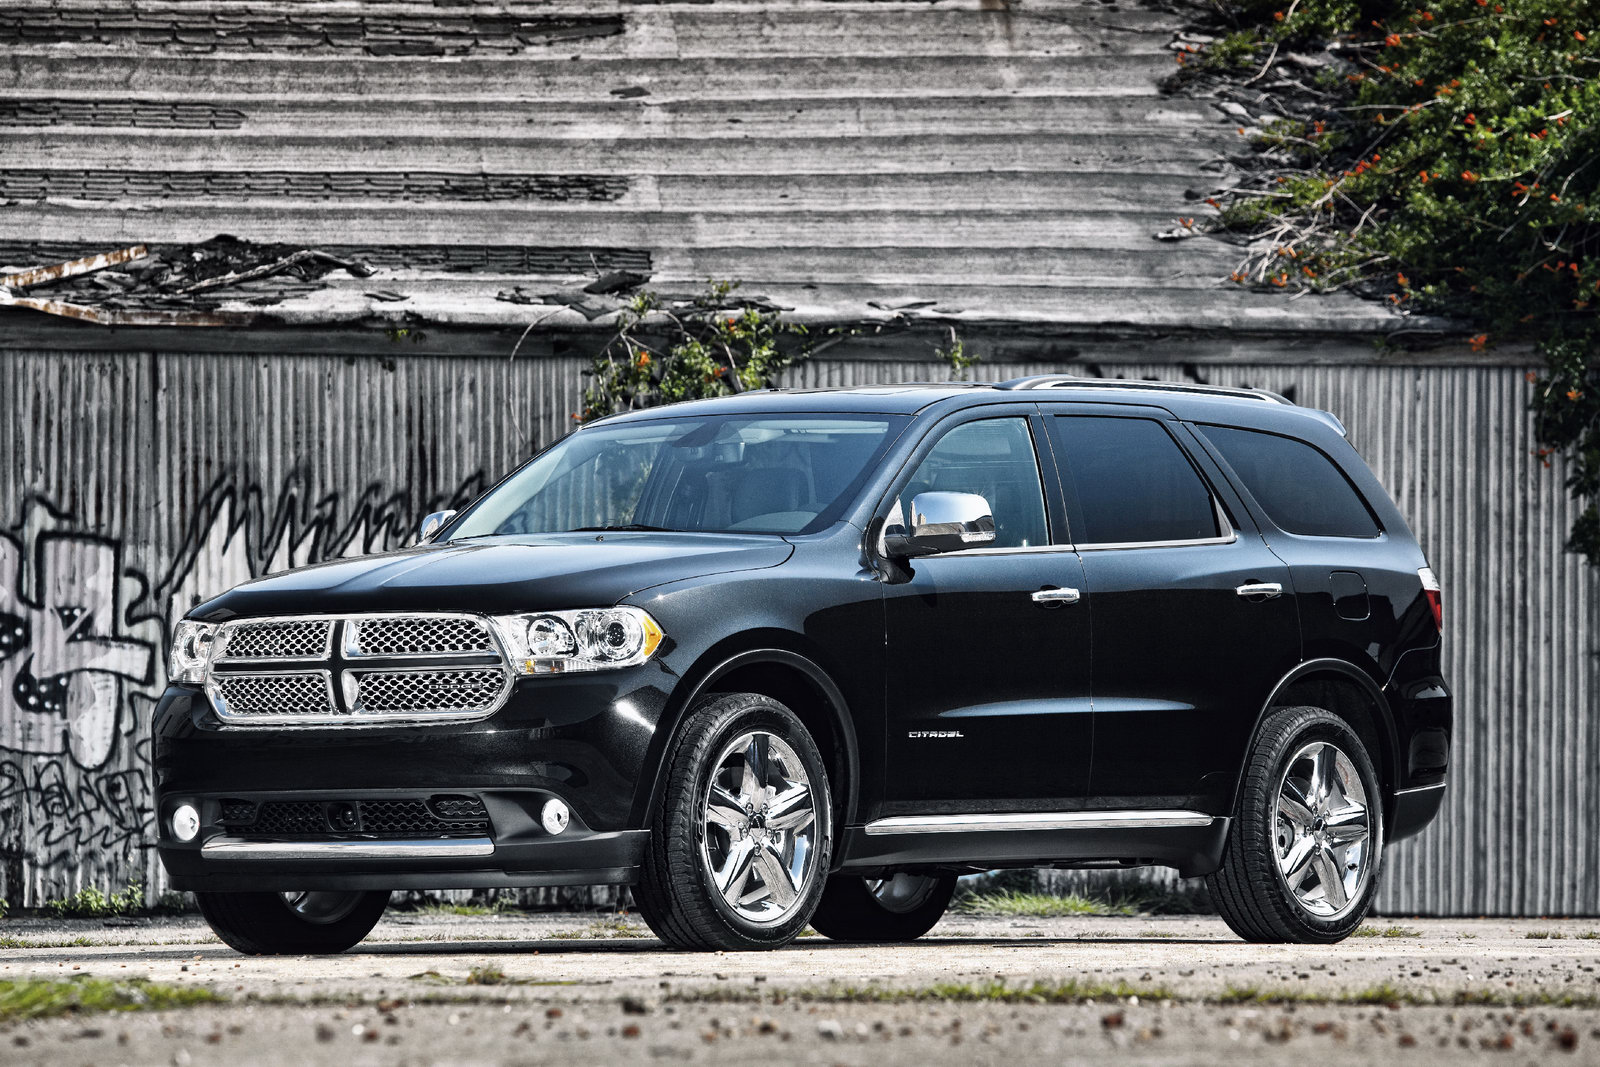 Dodge Durango photo 04